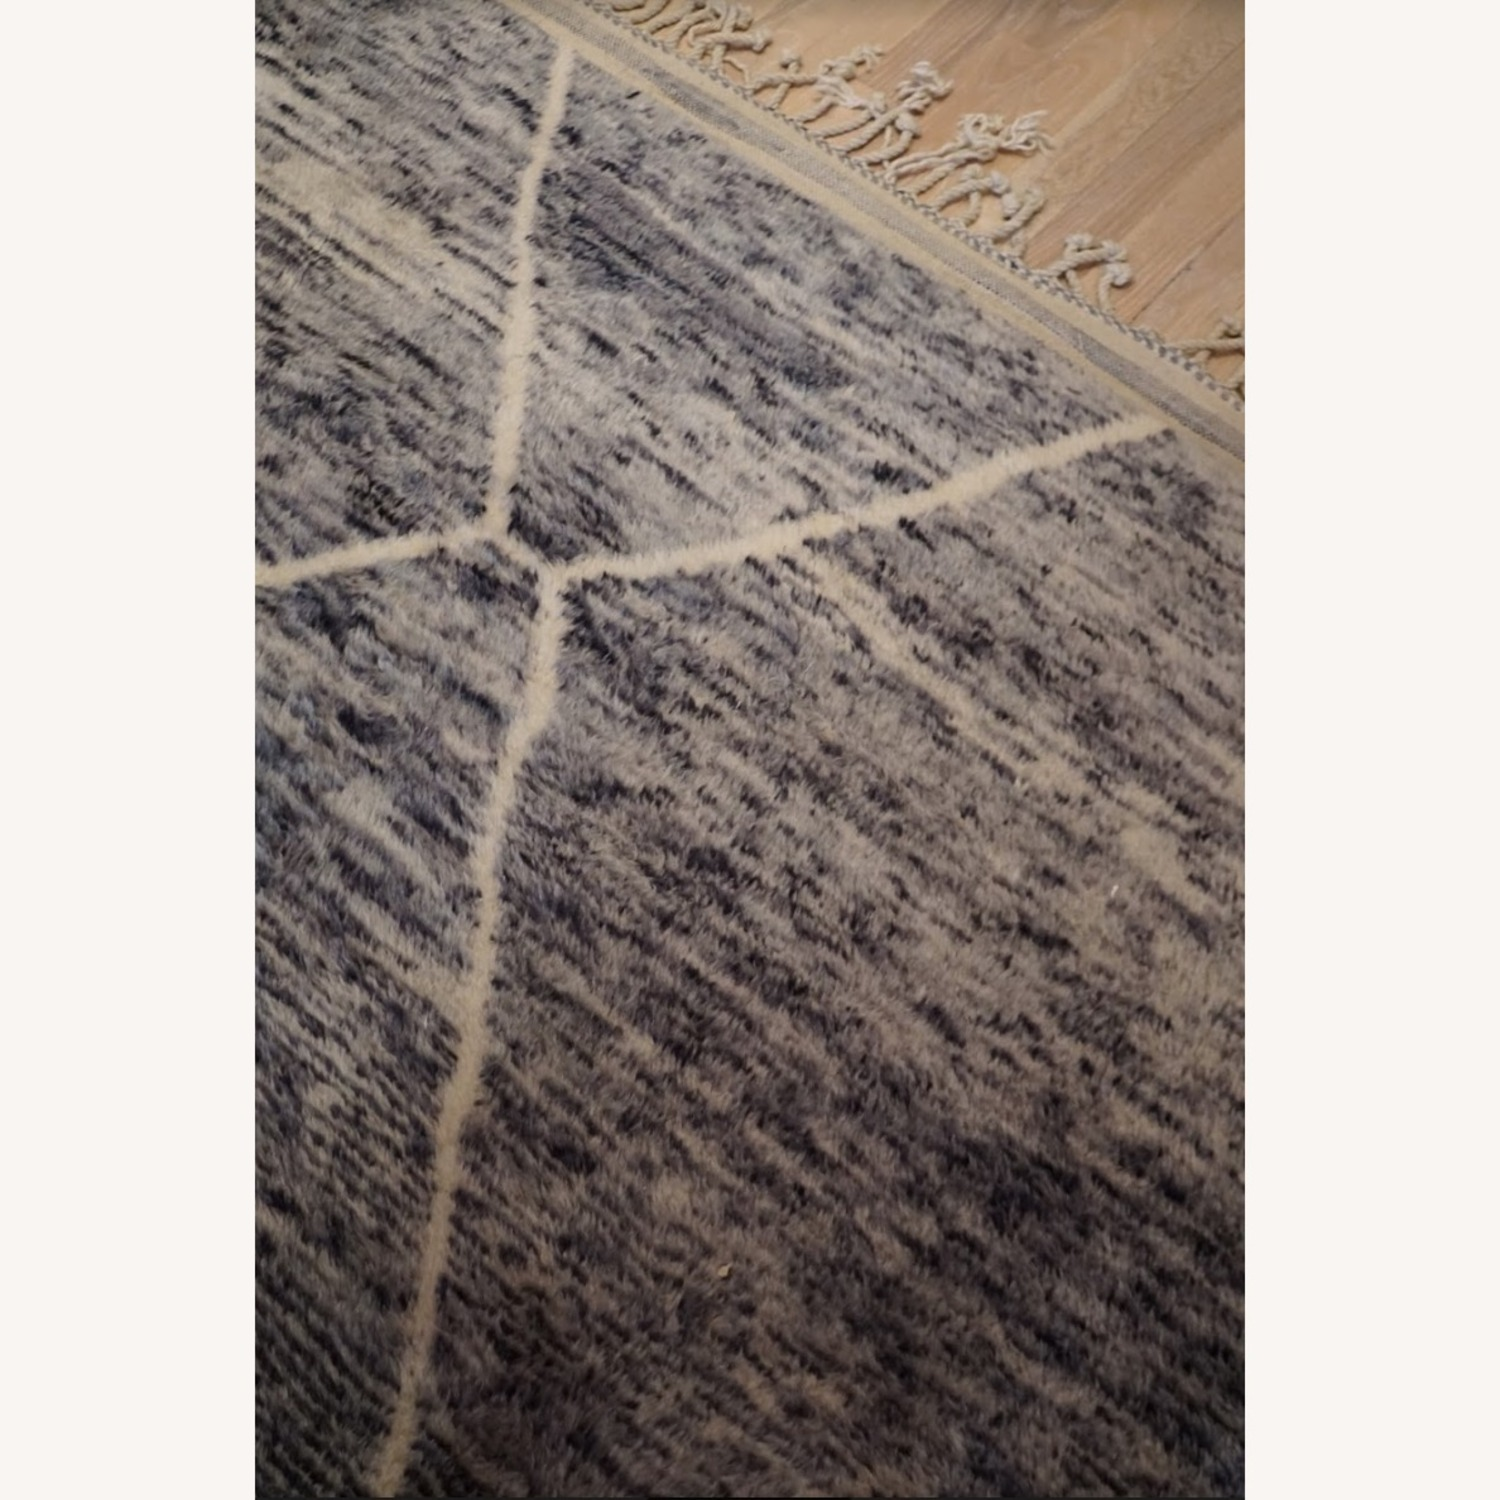 ABC Carpet and Home Beni Ourain Moroccan Rug - image-1